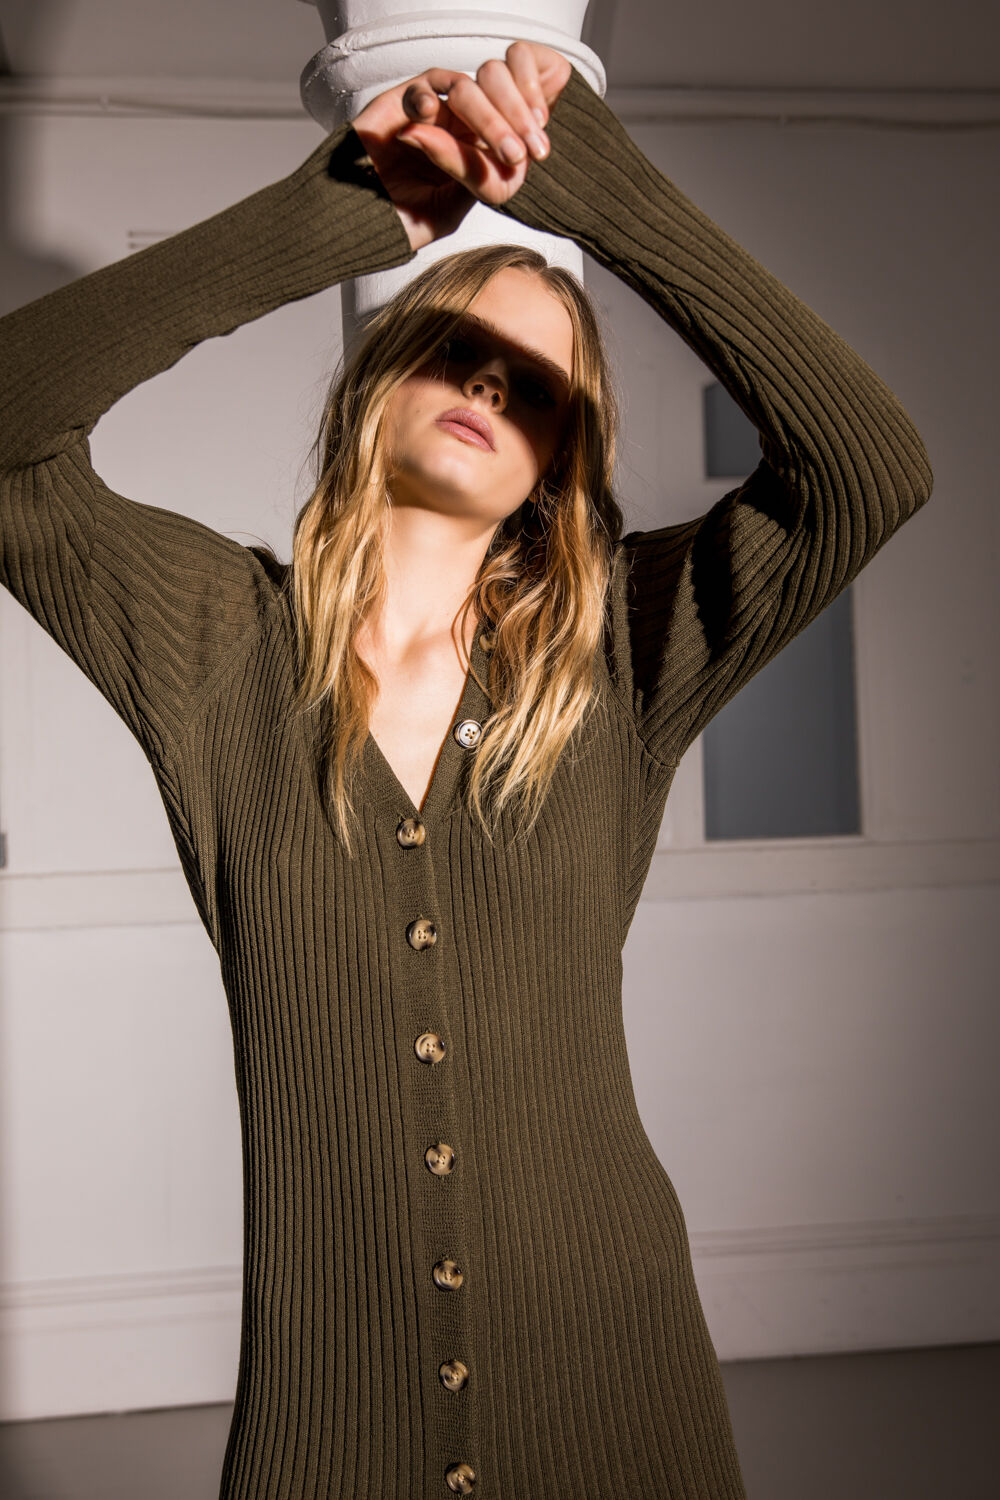 BUTTON FRONT KNIT DRESS in colour IVY GREEN